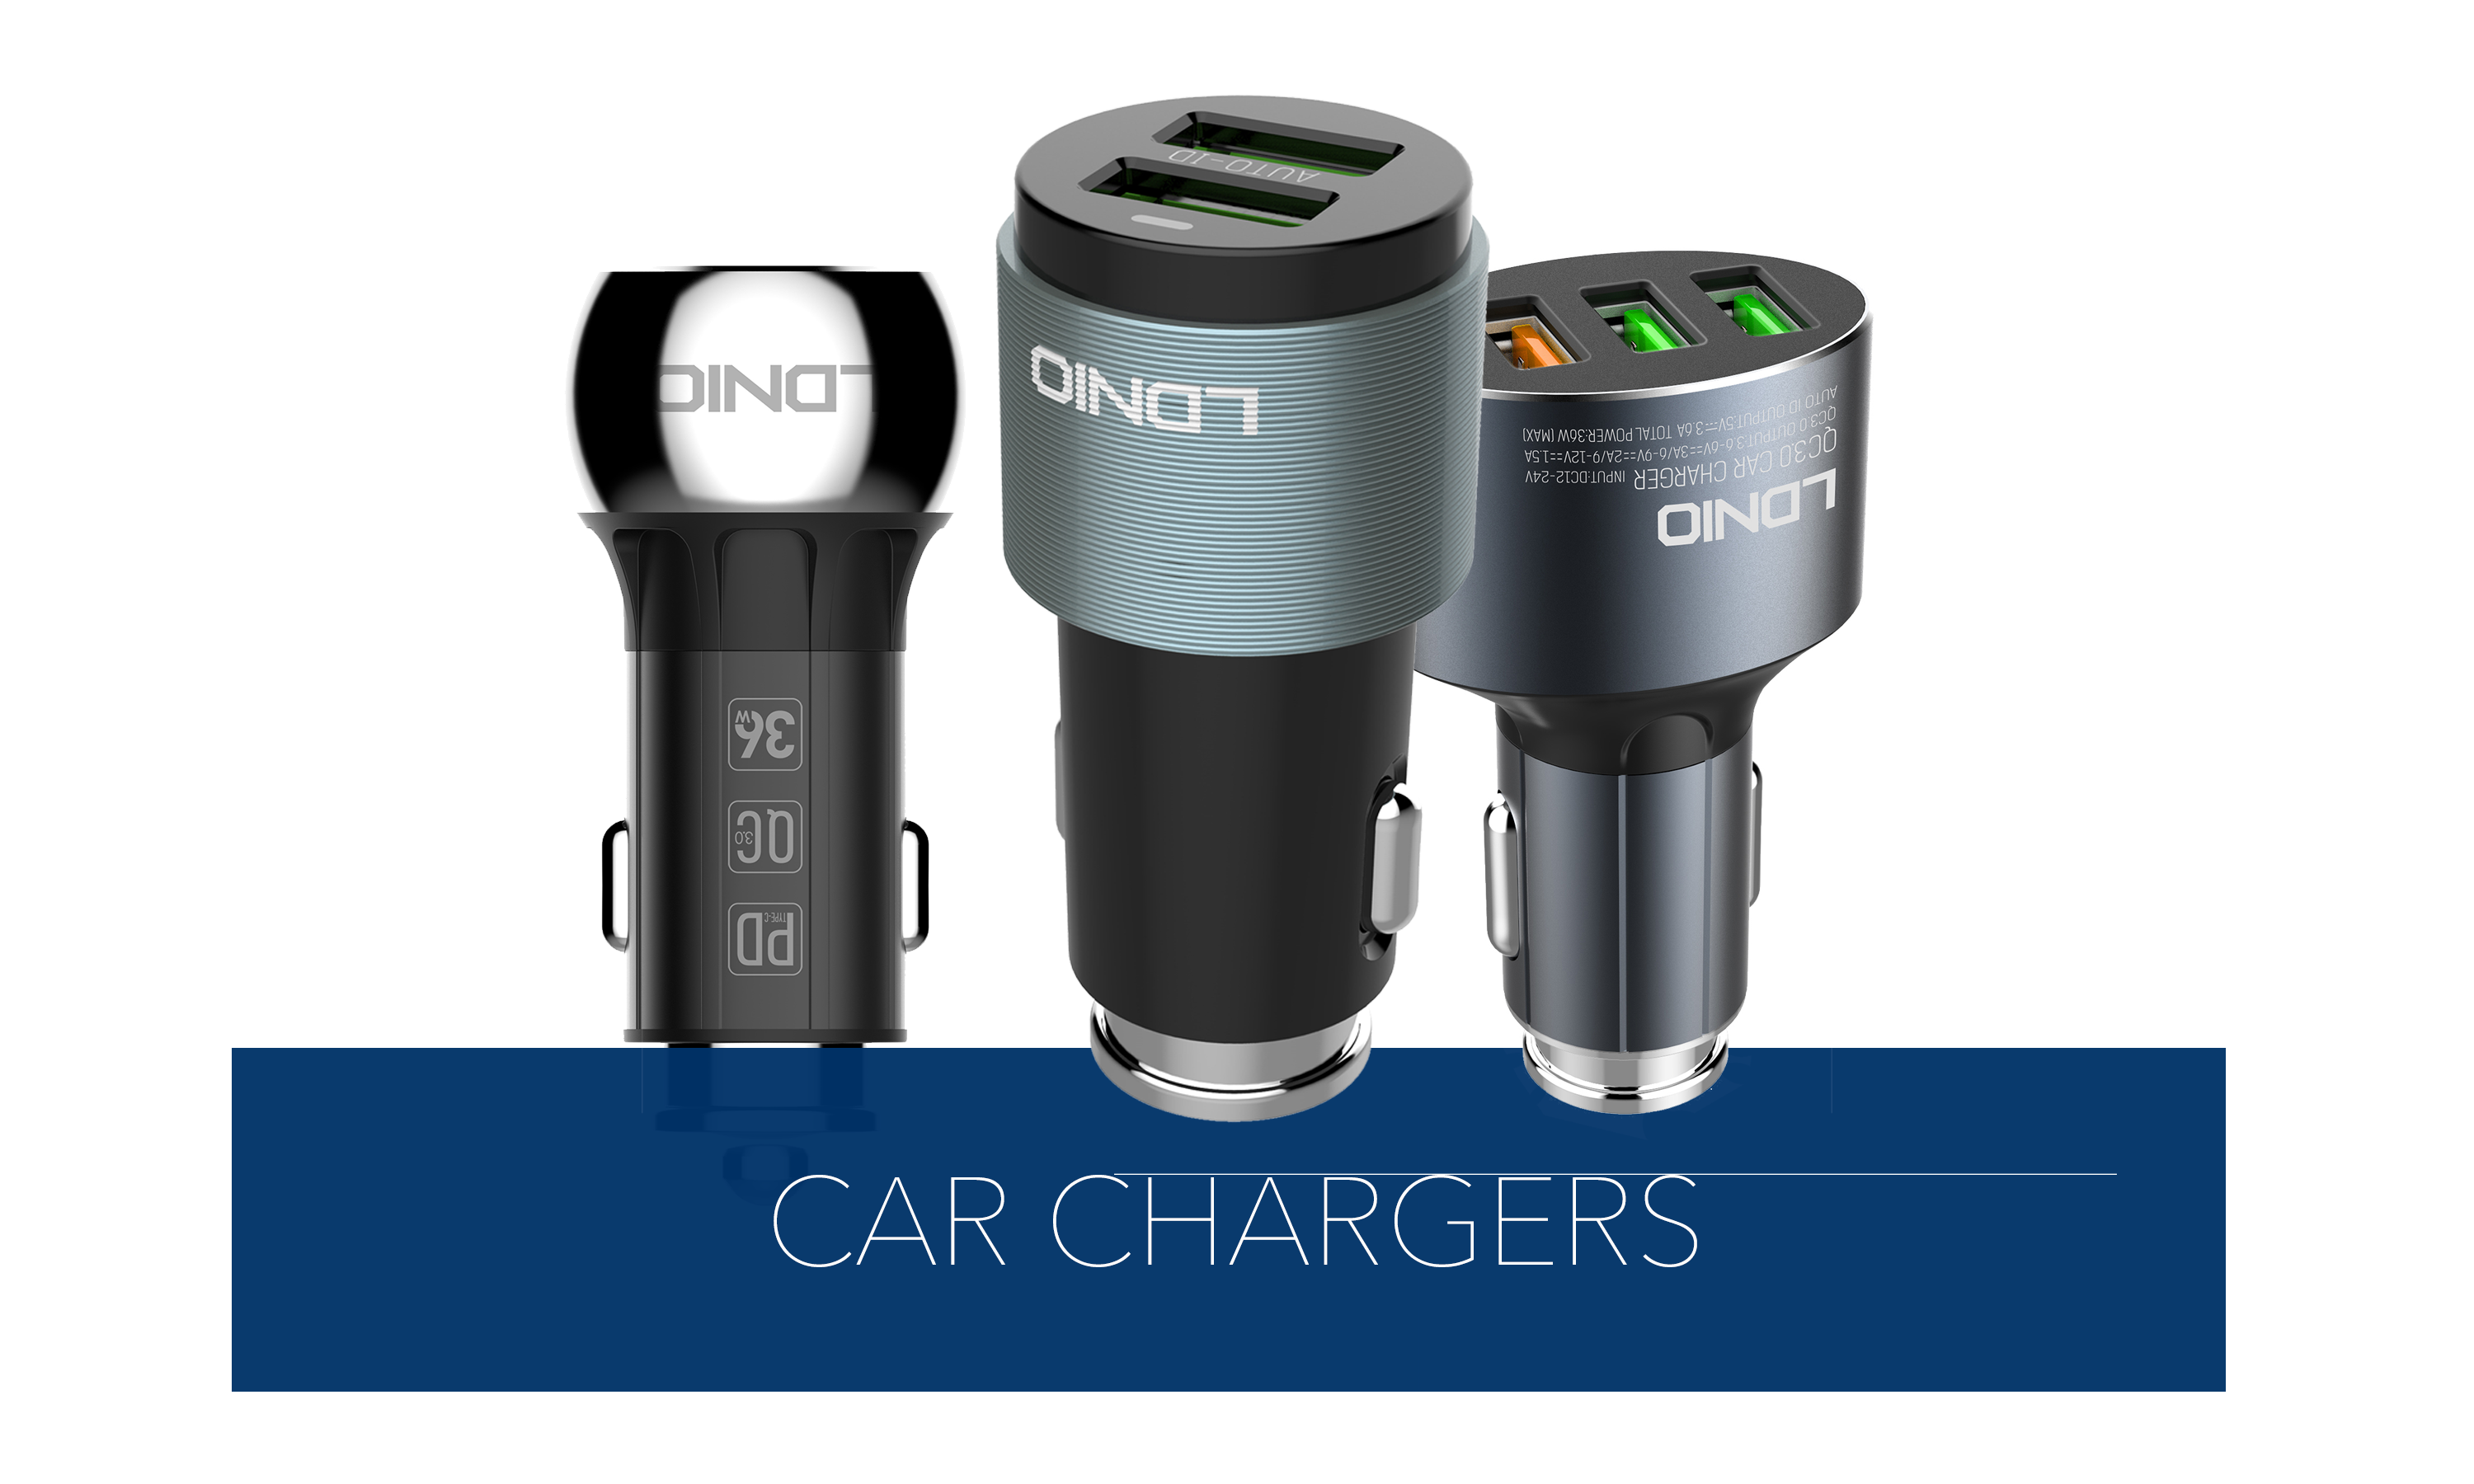 (CAR CHARGERS) Button